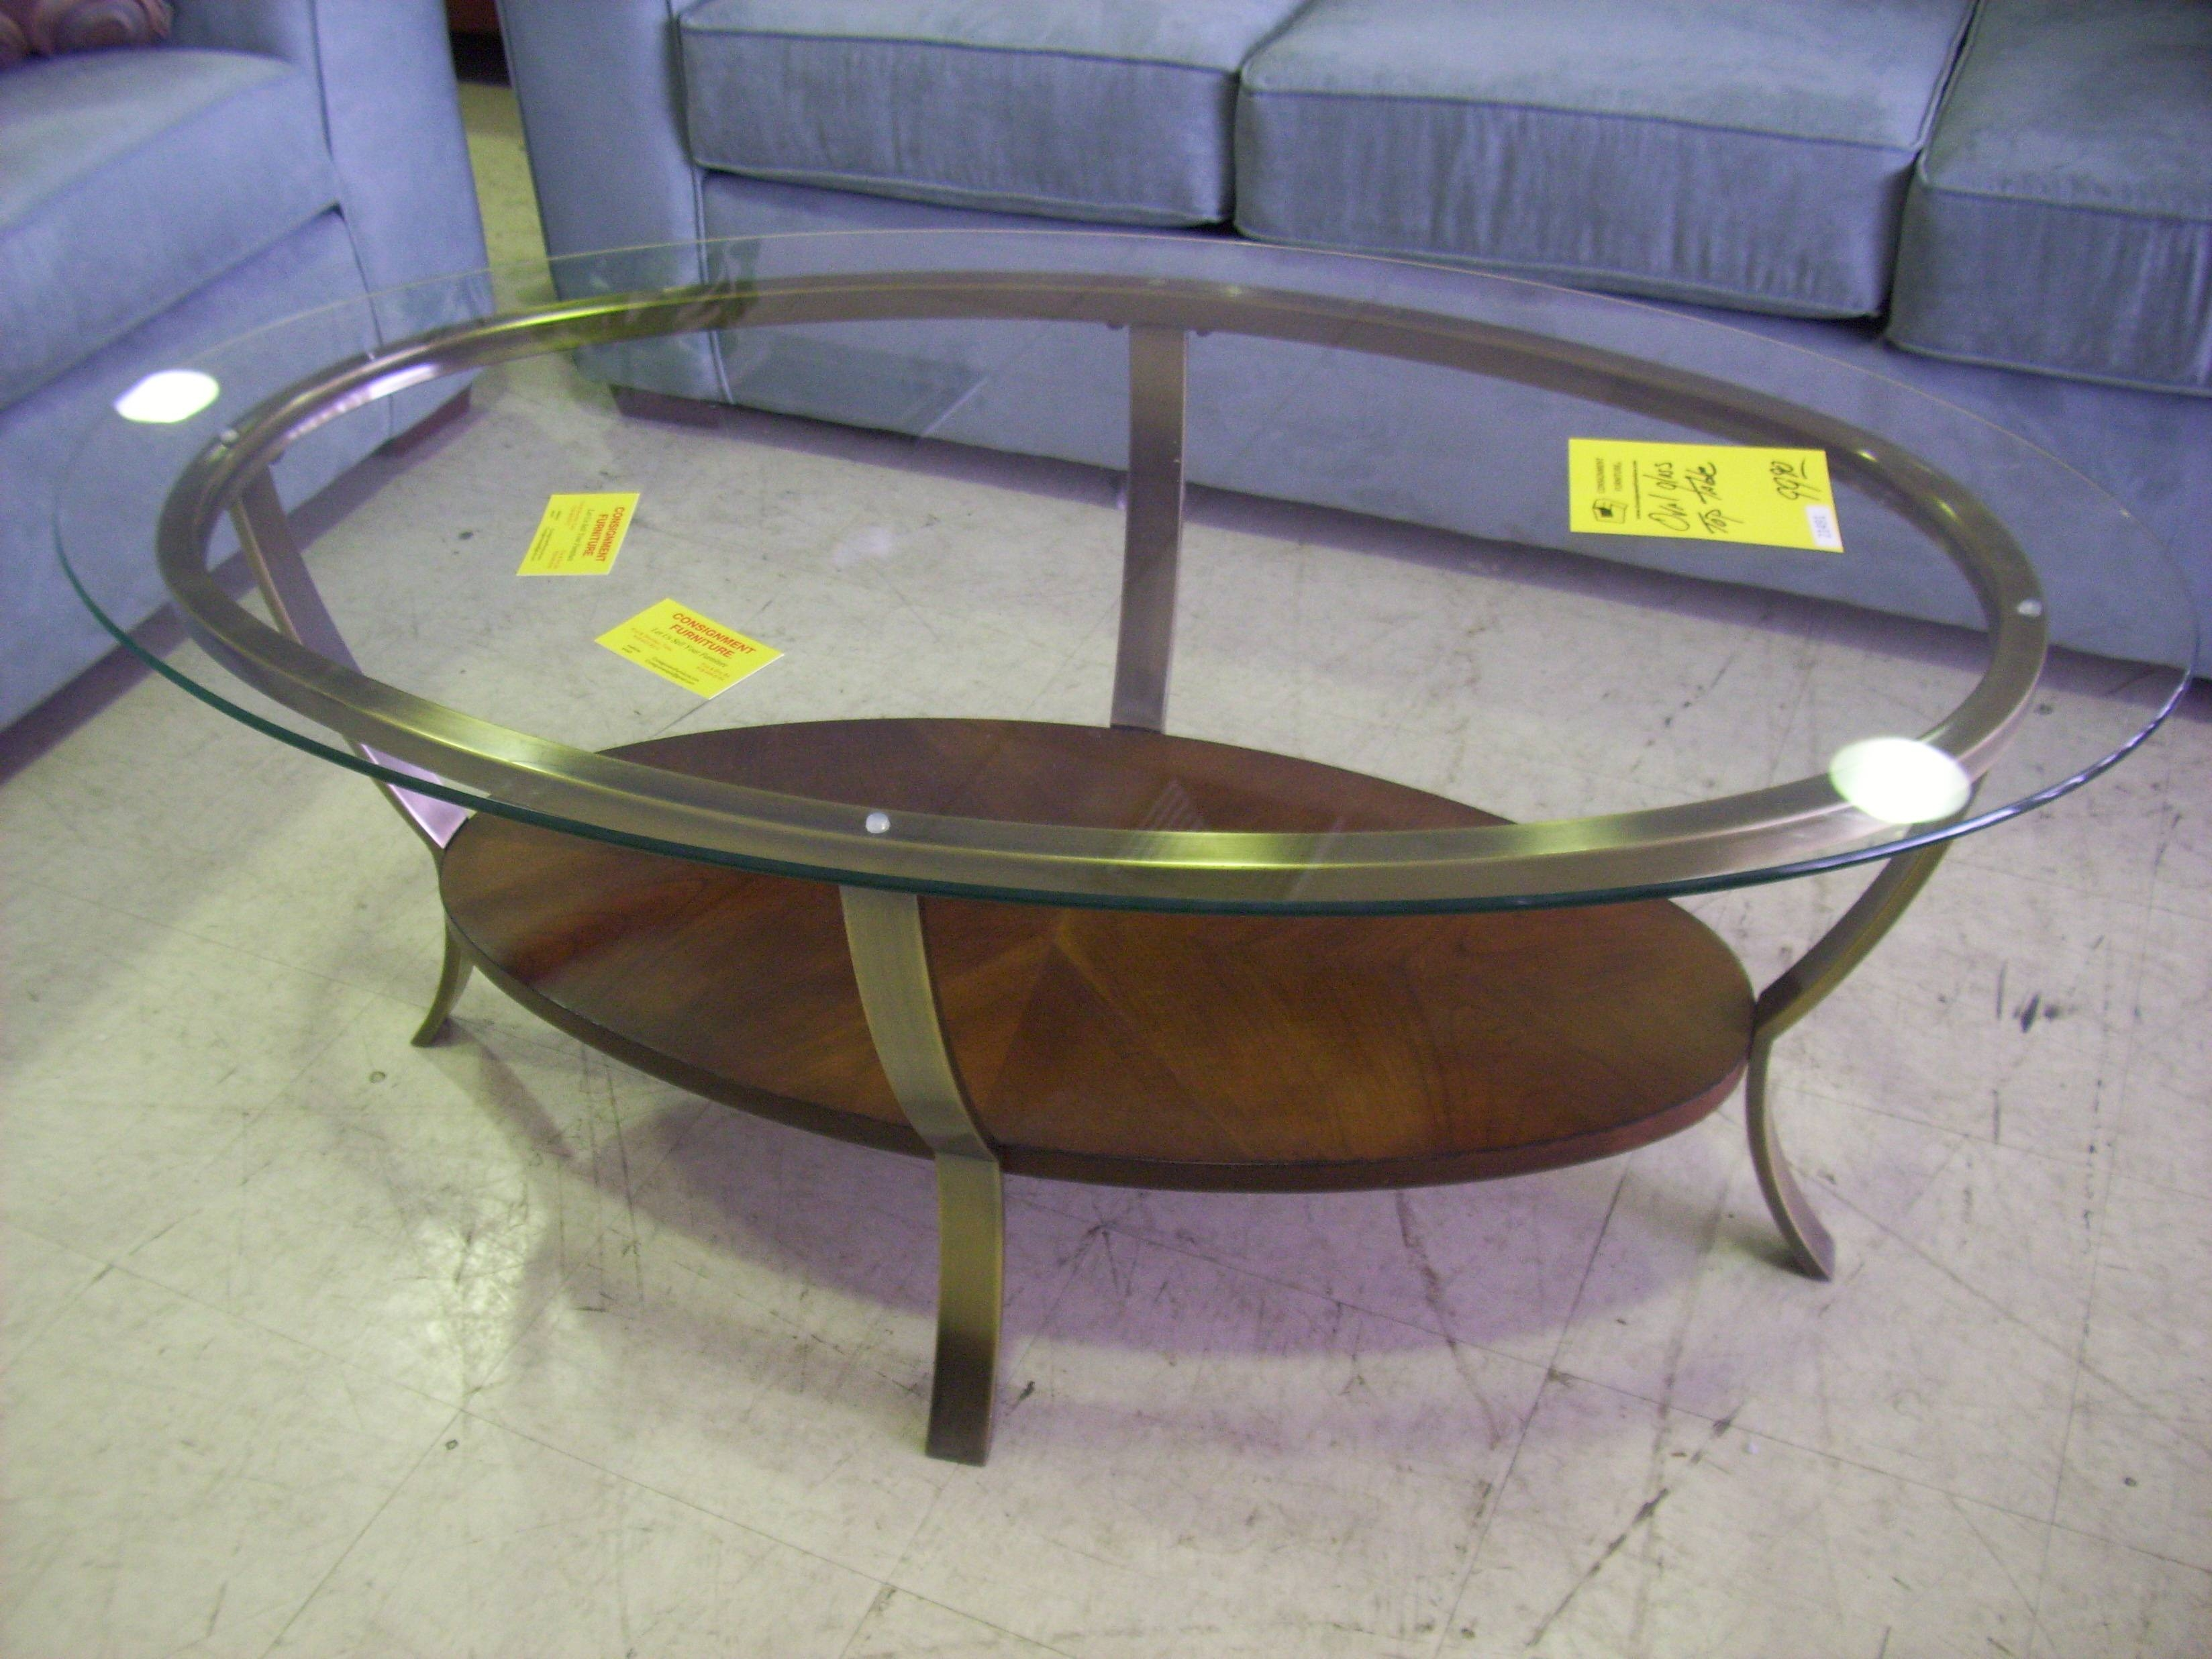 Coffee Tables Ideas: Best Oval Glass Top Coffee Table Sets Round within Oval Glass Coffee Tables (Image 5 of 30)